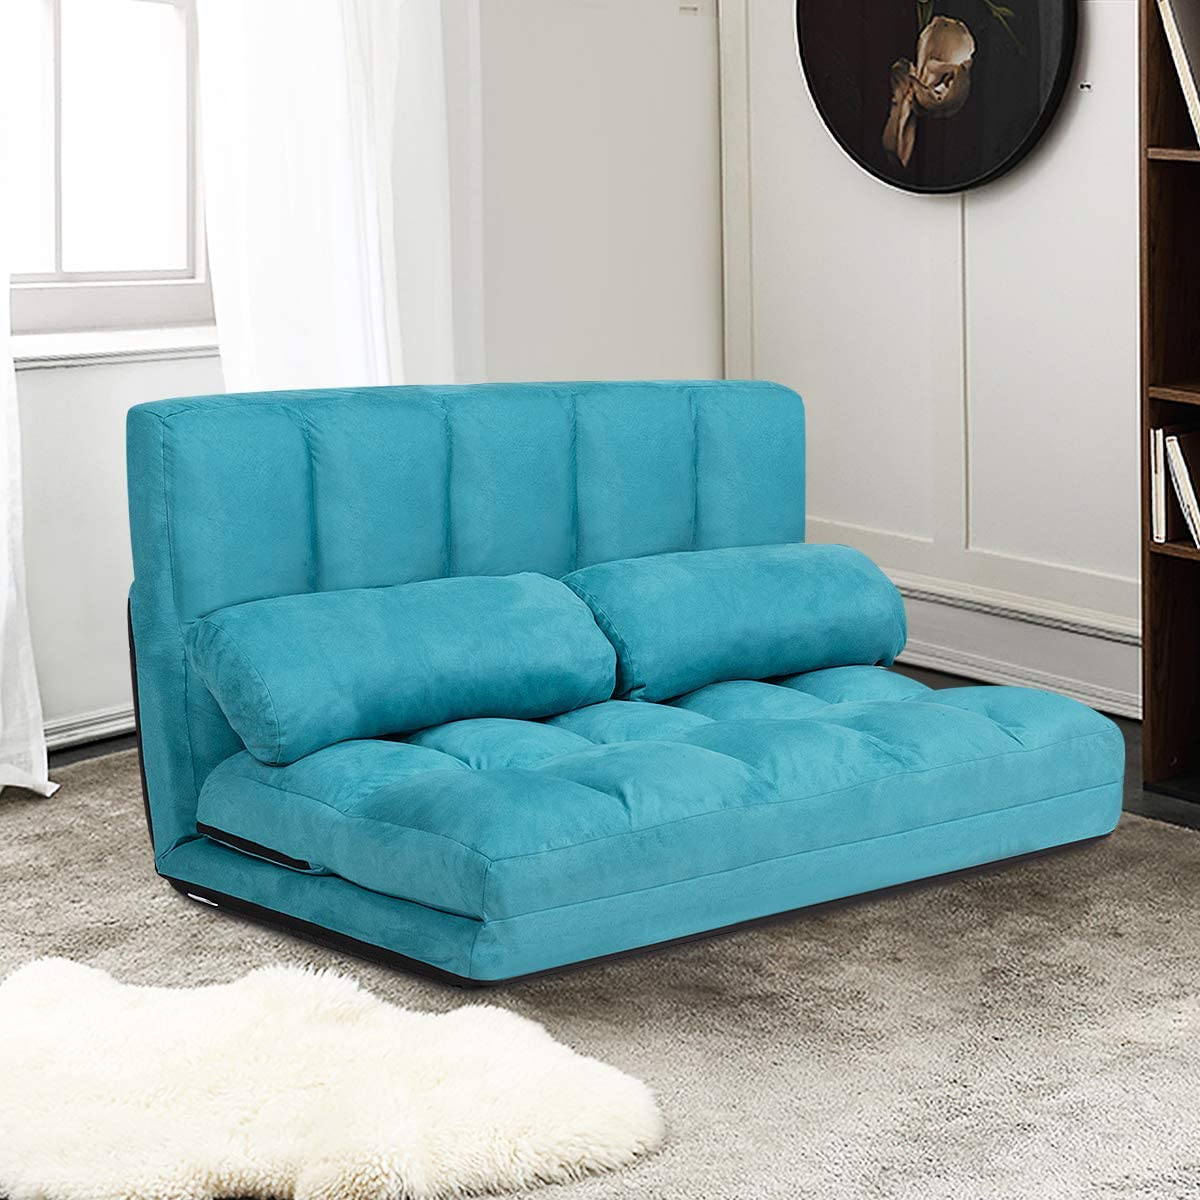 Giantex Adjustable Floor Sofa, Foldable Lazy Sofa Sleeper Bed 6-Position Adjustable, Suede Cloth Cover Detachable, Floor Gaming Sofa Couch with 2 Pillows for Bedroom Living Room Balcony Blue